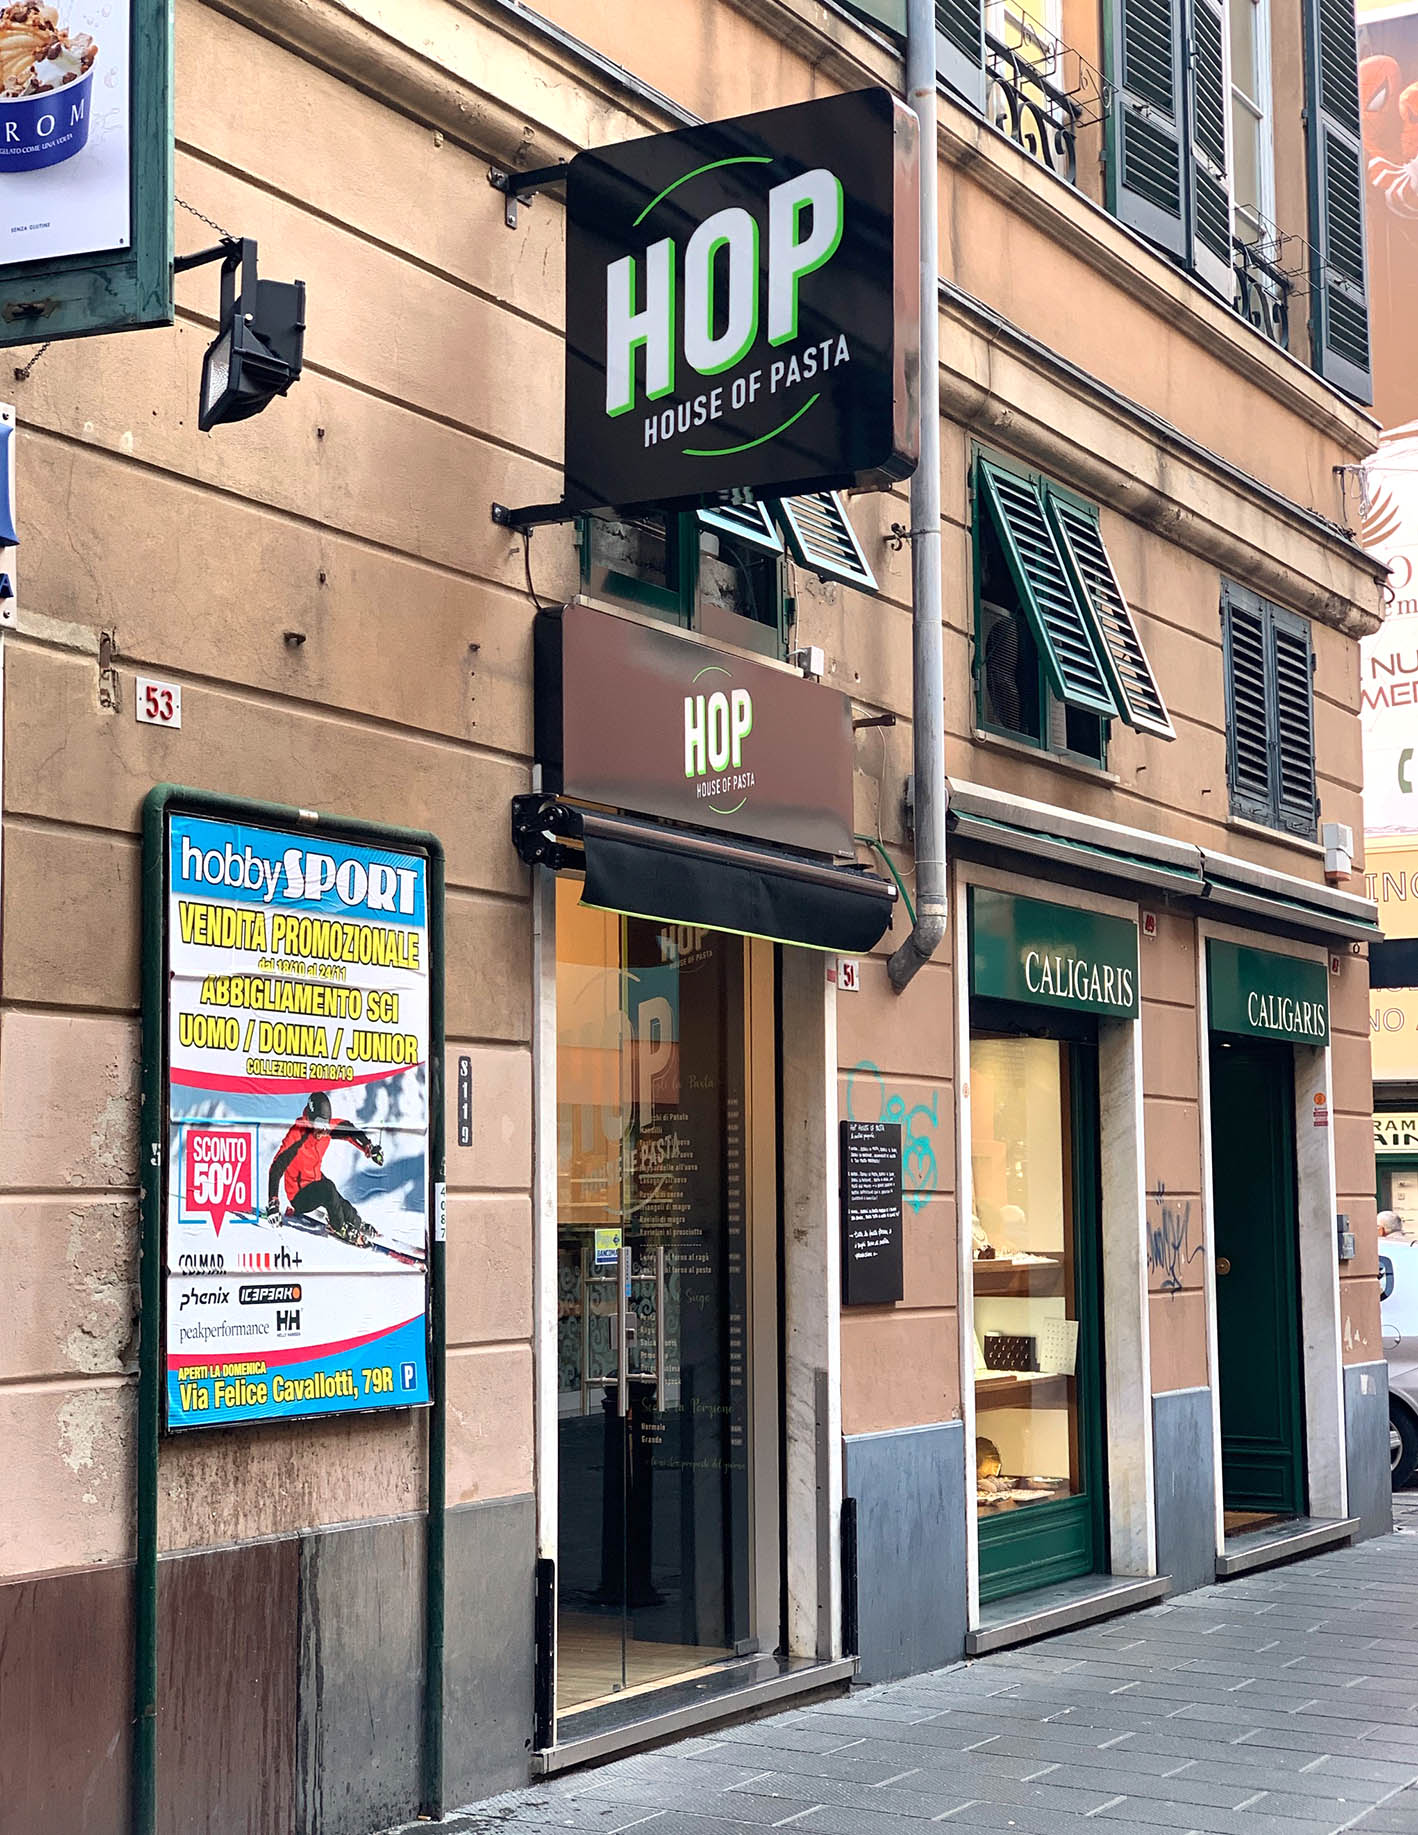 Hop House of pasta